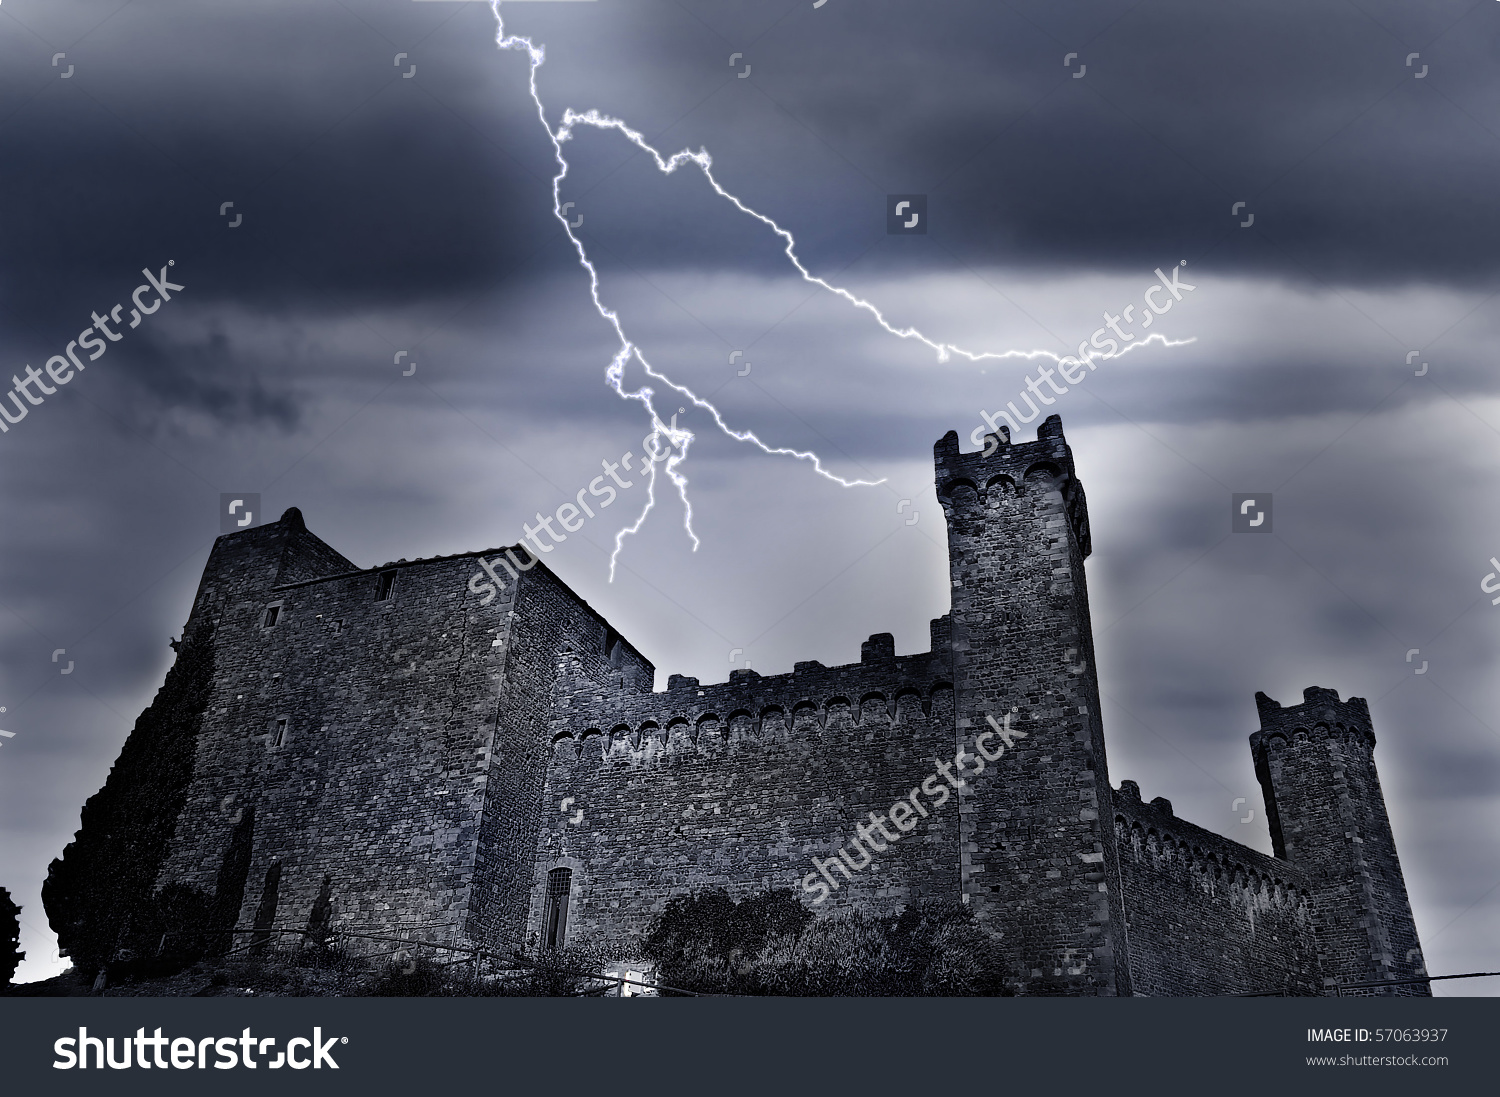 Old Castle Dark Ominous Clouds Lightning Stock Photo 57063937.